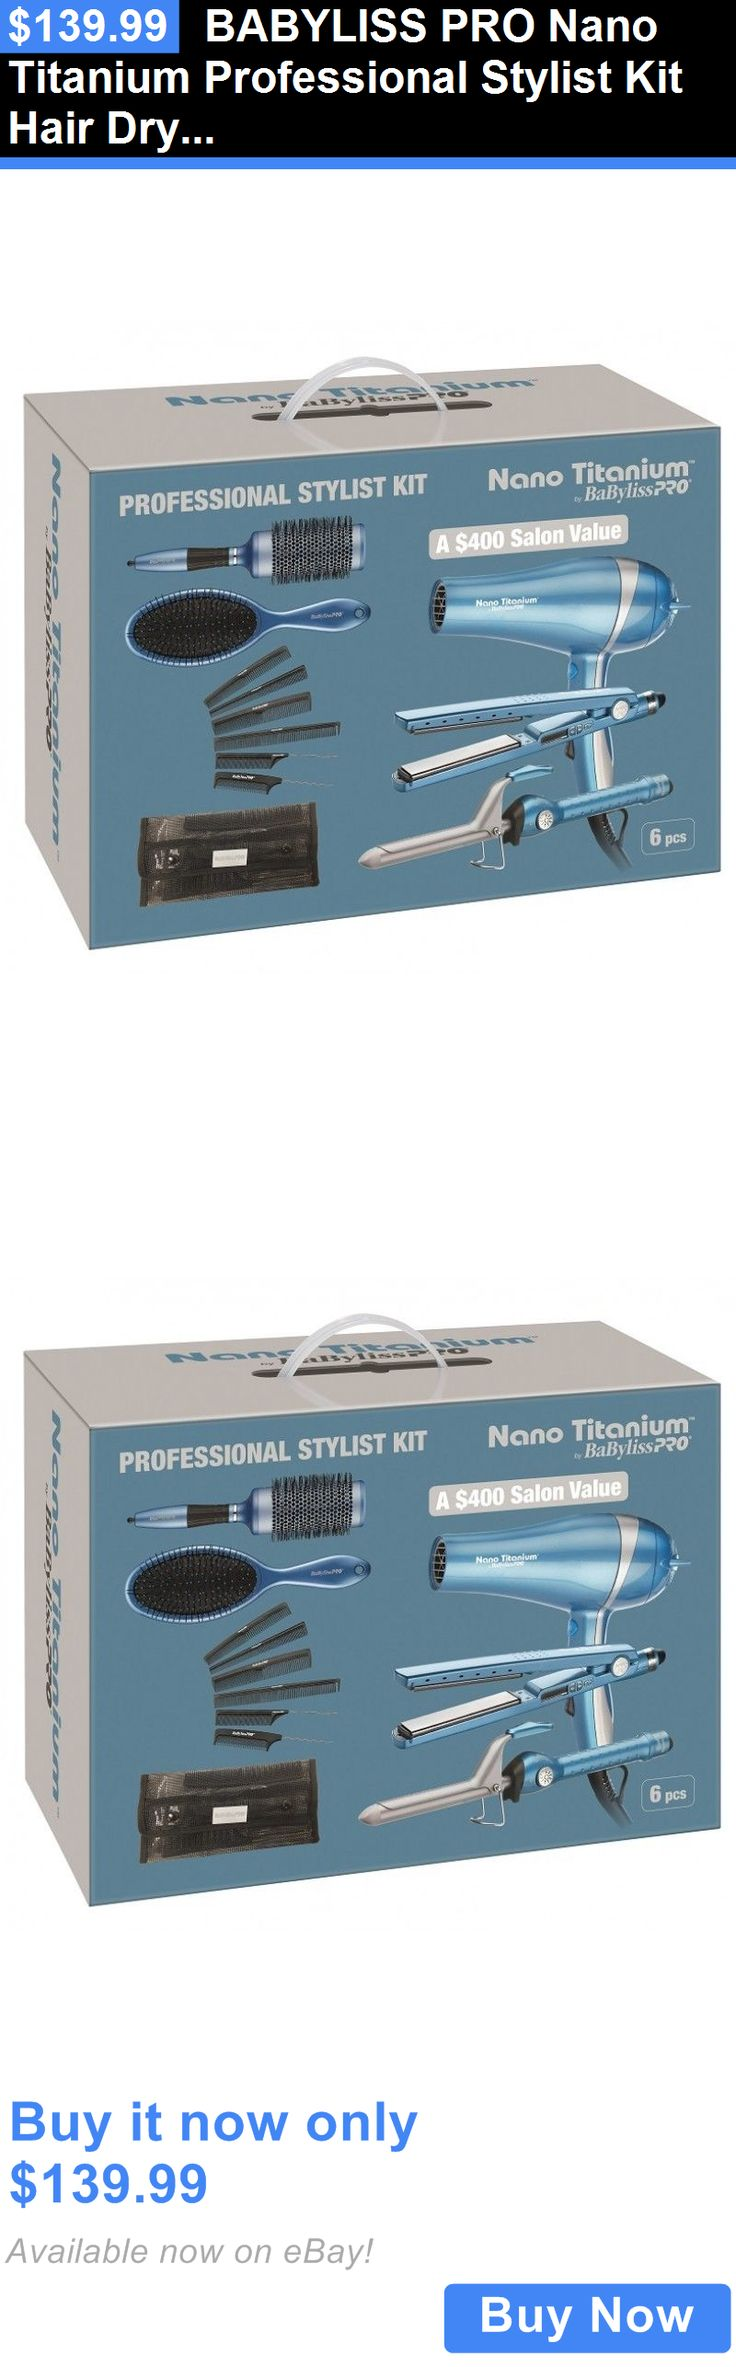 Hair Beauty: Babyliss Pro Nano Titanium Professional Stylist Kit Hair Dryer, Flat Iron, Curli BUY IT NOW ONLY: $139.99